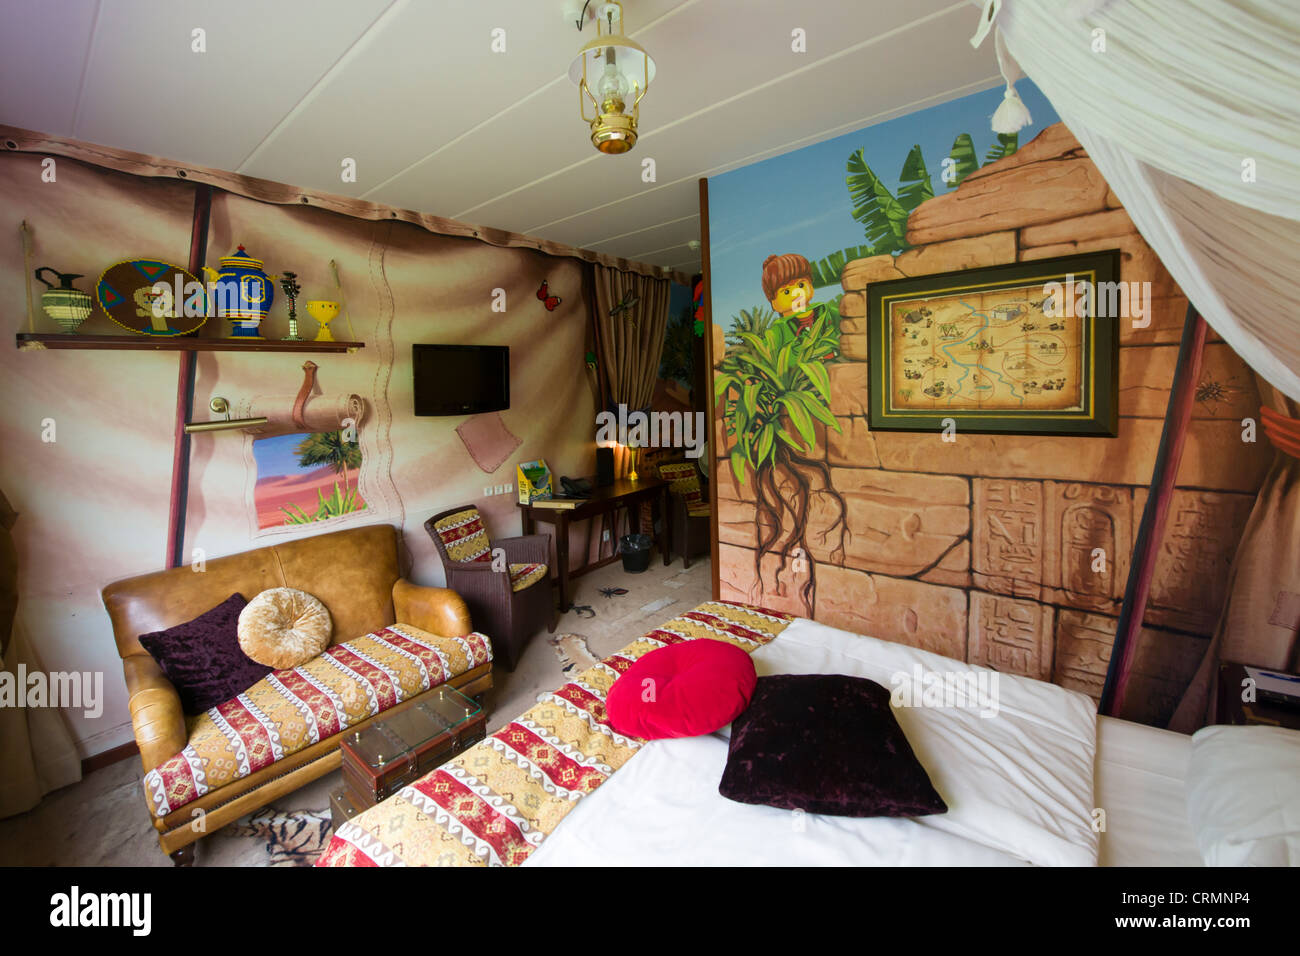 Interior Of Adventure Themed Room At The Hotel Legoland